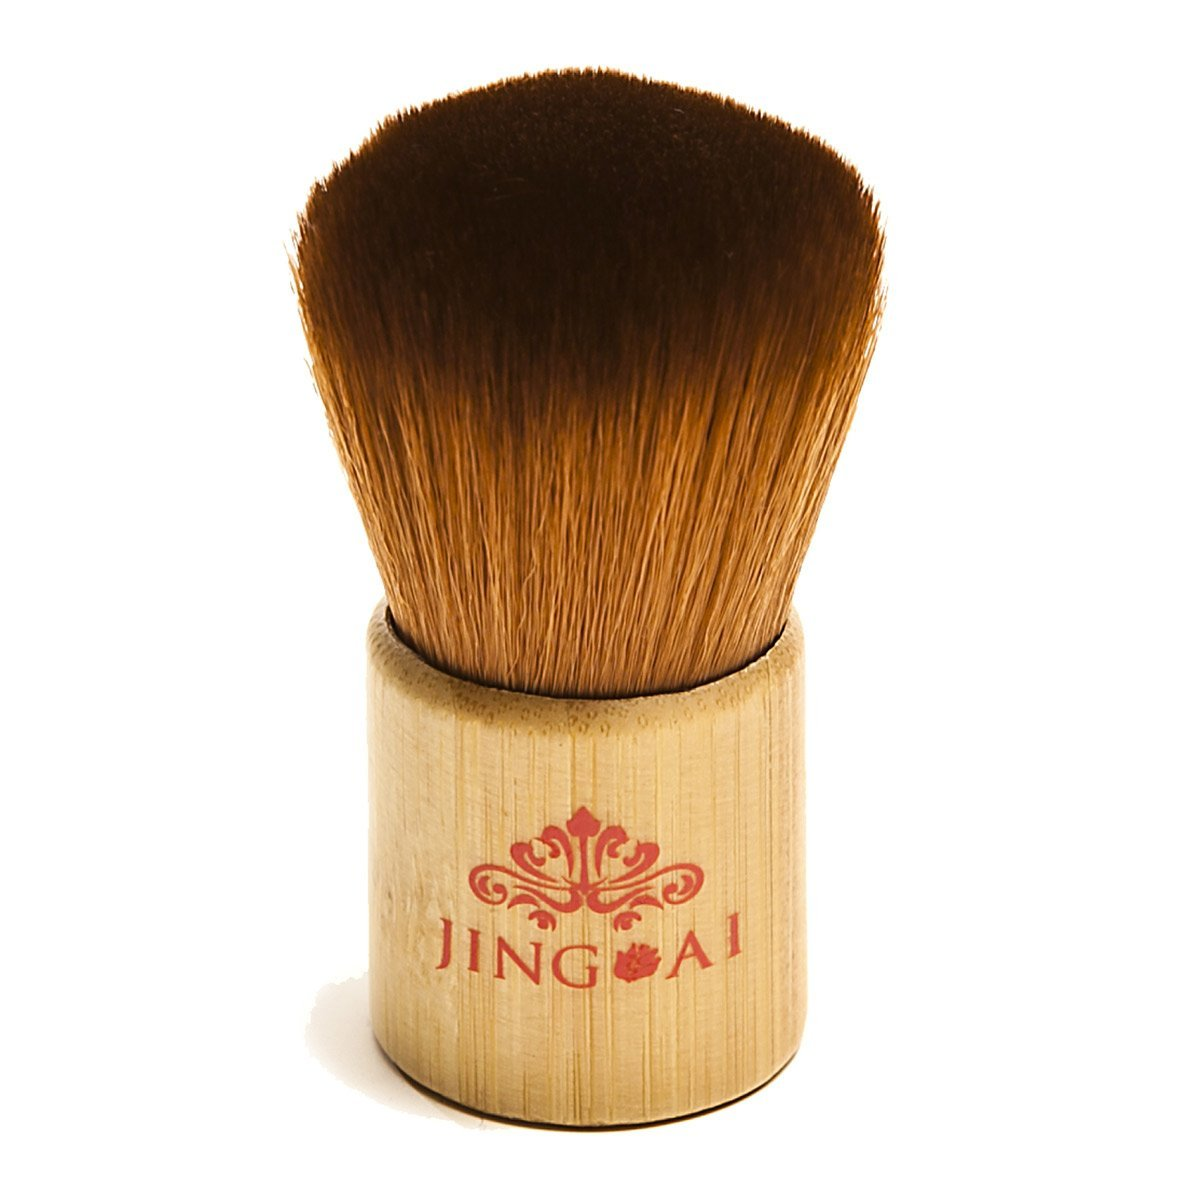 Kabuki Foundation Makeup Brush - Jing Ai's Best Soft Kabuki Brush Flawlessly Buffs Color Onto Your Cheeks, Eyelids Or Anywhere You Are Looking For A Healthy Pop Of Color. Creates The Perfect Face